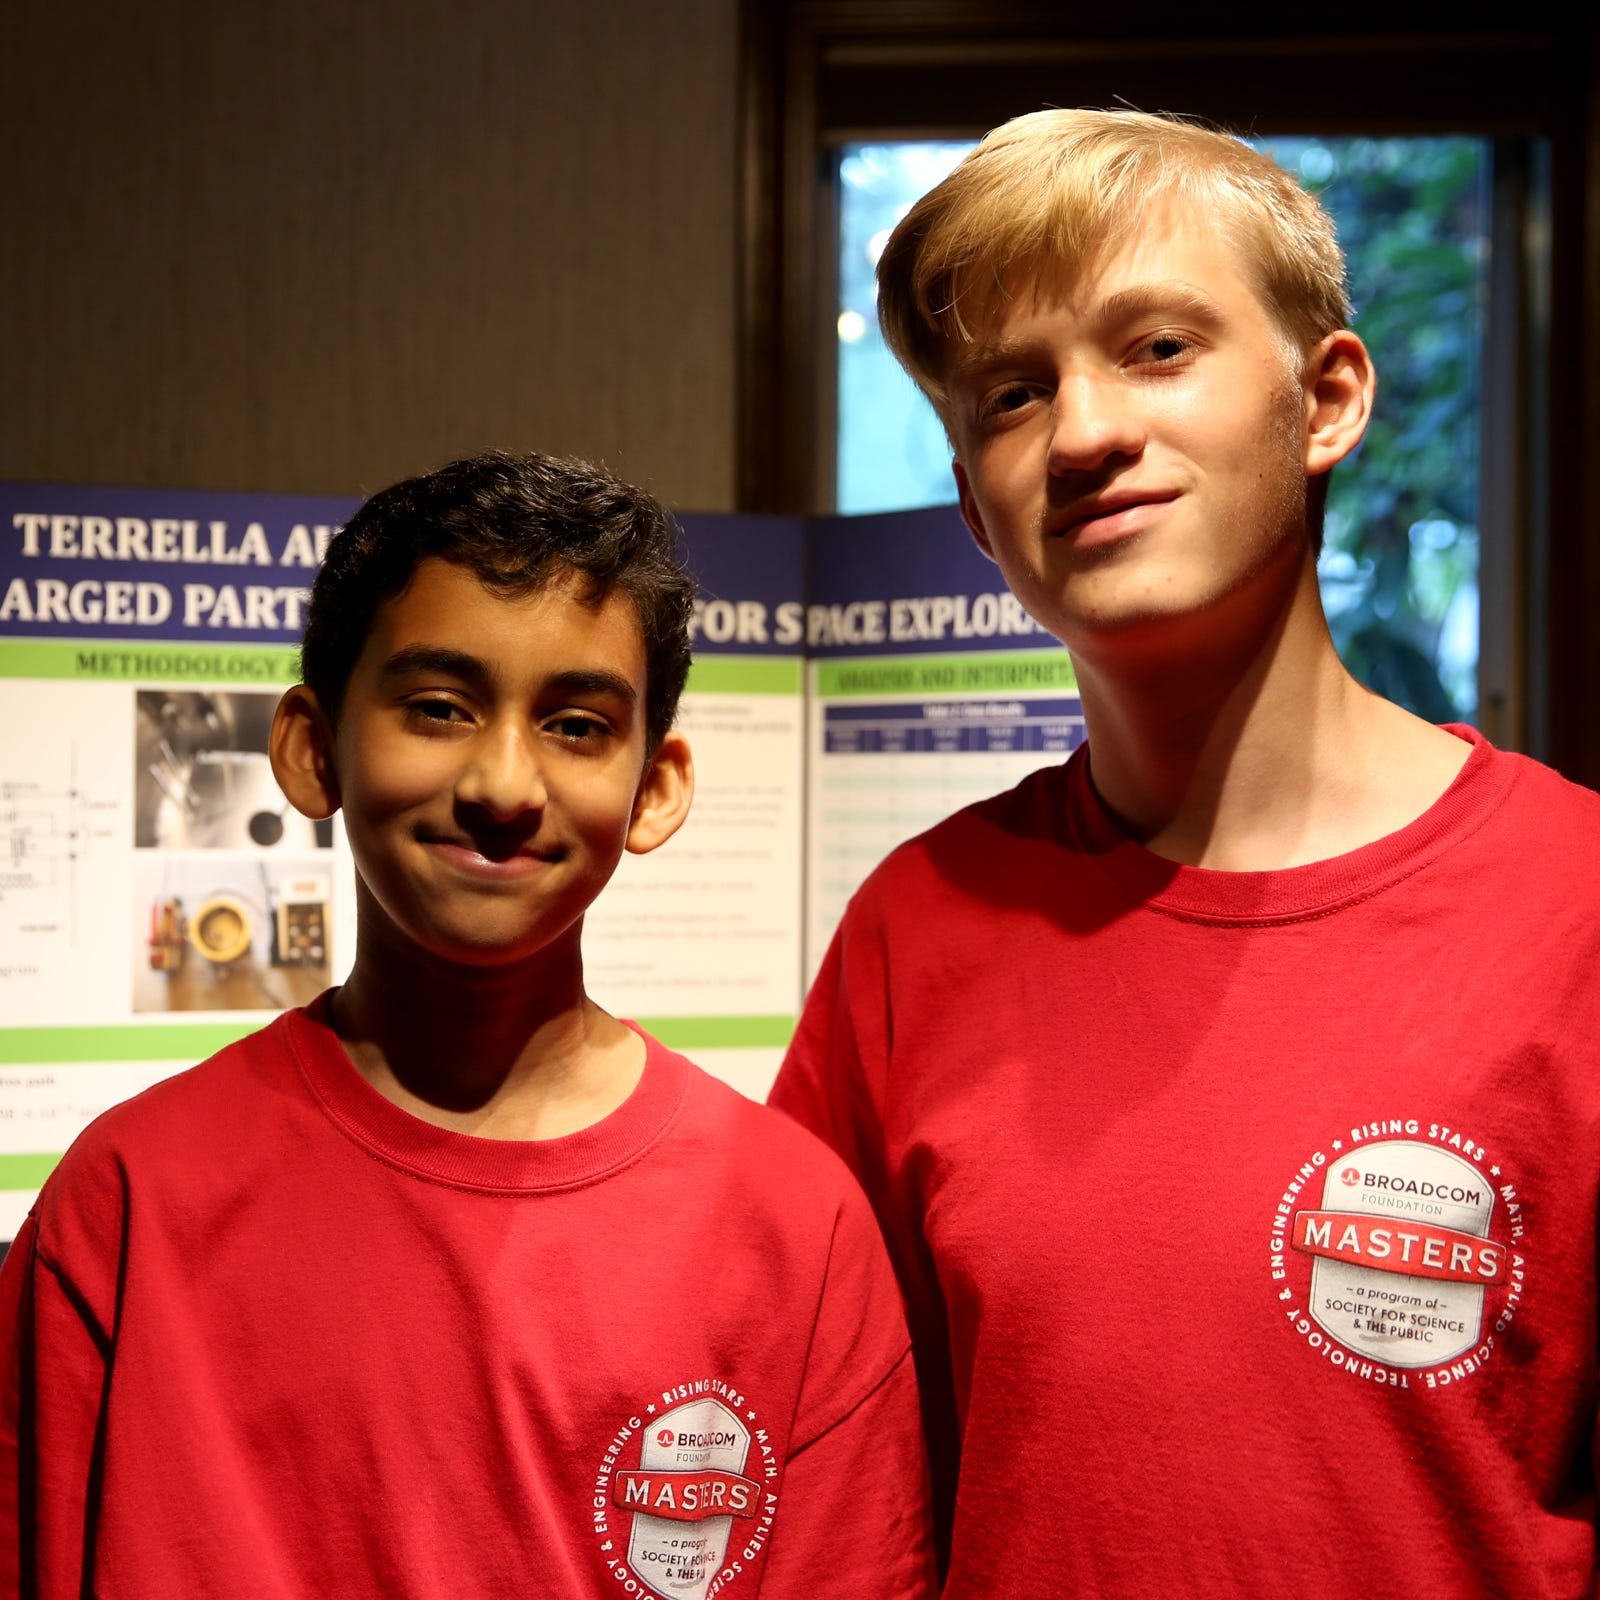 Mihir Joshi, left, a Howard Street Charter School eighth-grader, and John Madland, a Leslie Middle School eighth-grader, are among 30 finalists for the Broadcom MASTERS science competition in Washington D.C. They designed a project to use magnets to shield future missions on Mars from solar radiation. Photographed at Madland's home in Salem on Thursday, Oct. 11, 2018.